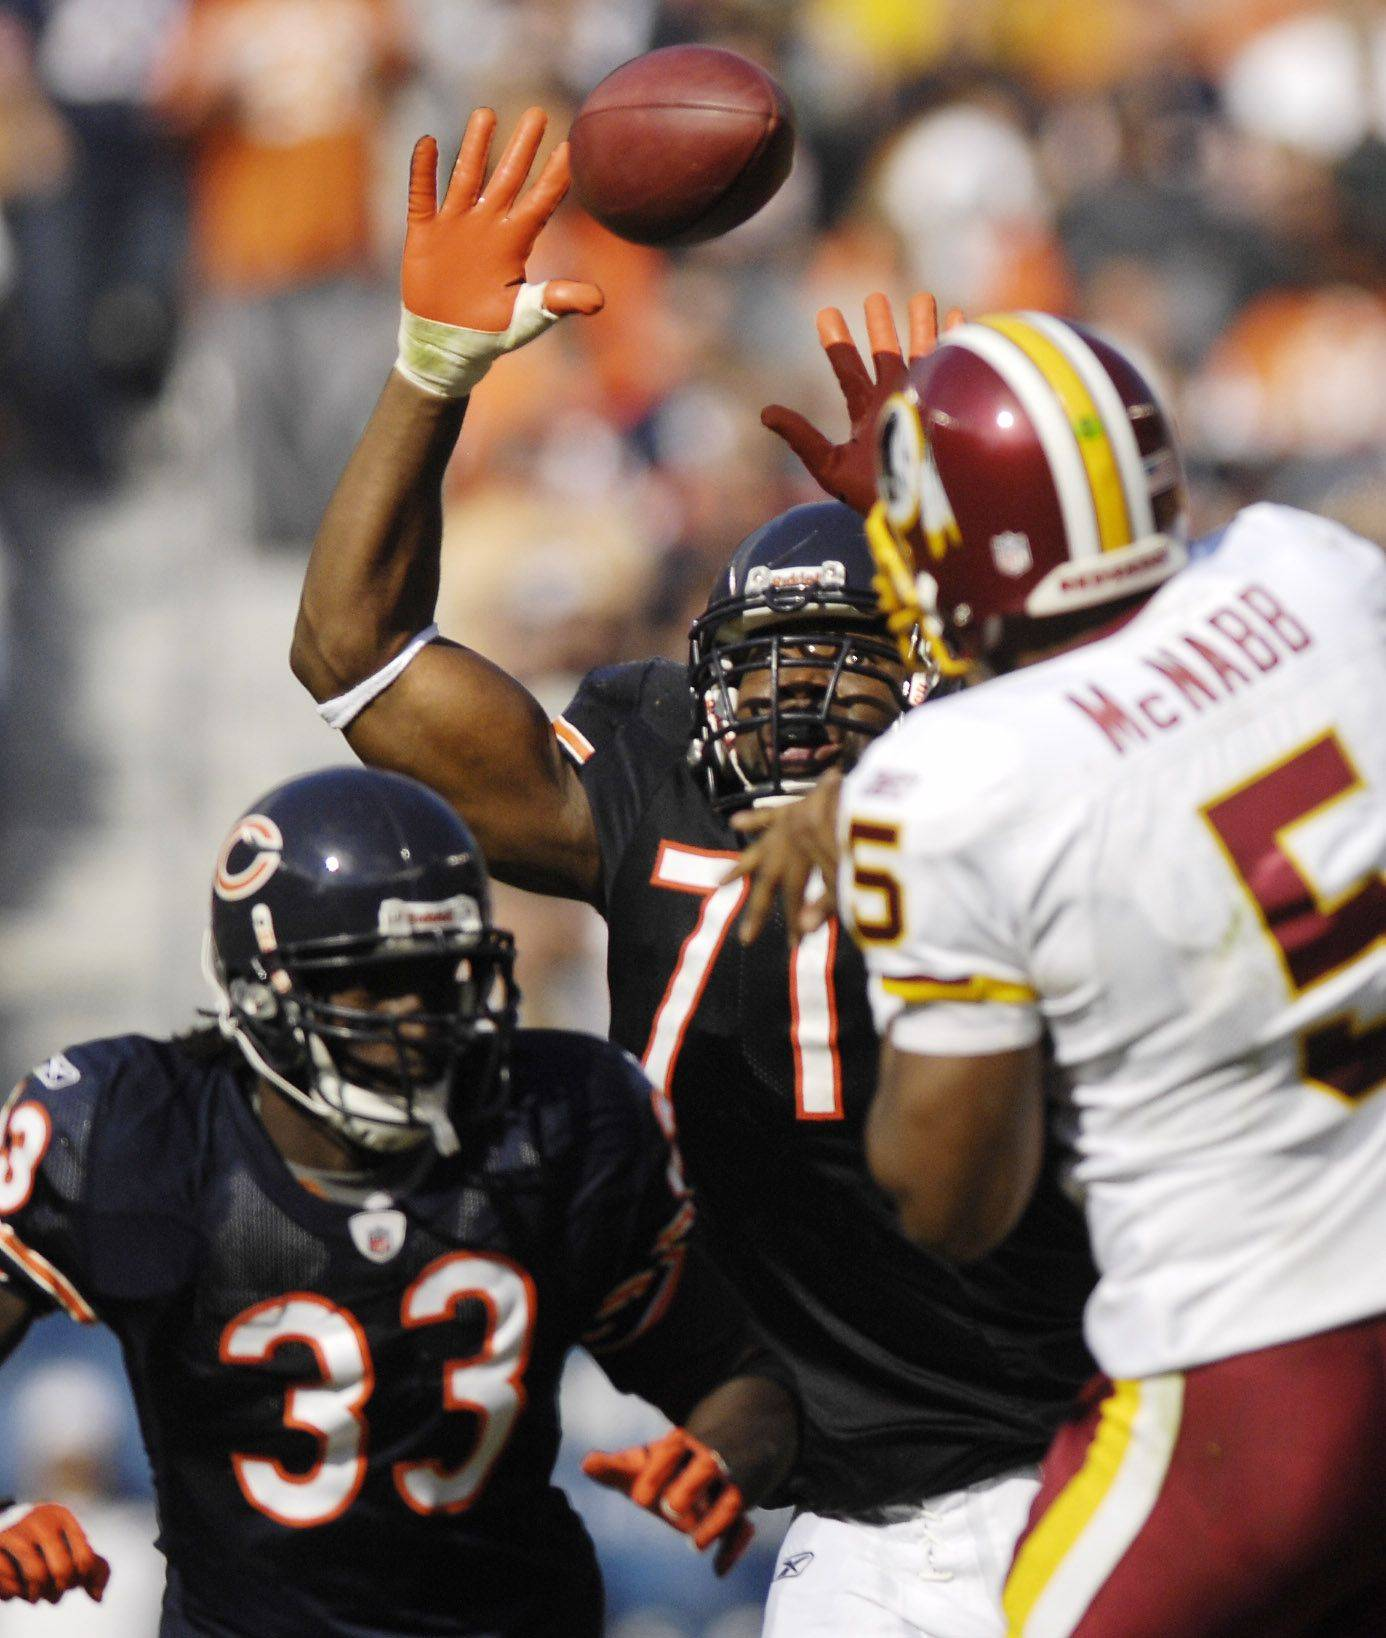 Chicago Bears defensive tackle Israel Idonije bats a Washington Redskins quarterback Donovan McNabb pass.